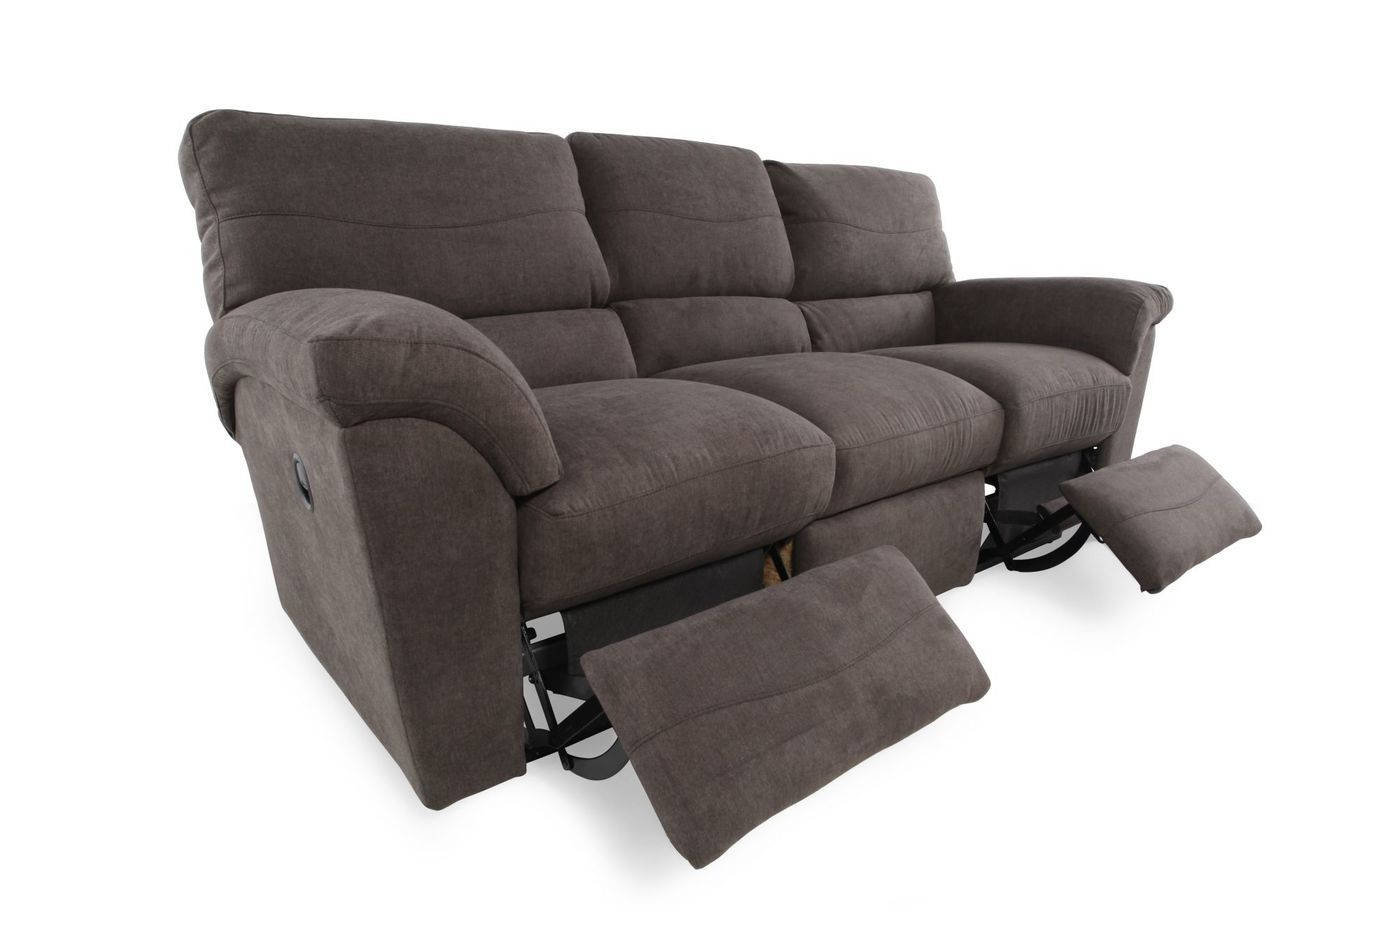 Nice Lazy Boy Recliner Sofa , Elegant Lazy Boy Recliner Sofa 32 In Sofas  And Couches Ideas With Lazy Boy Recliner Sofa ...